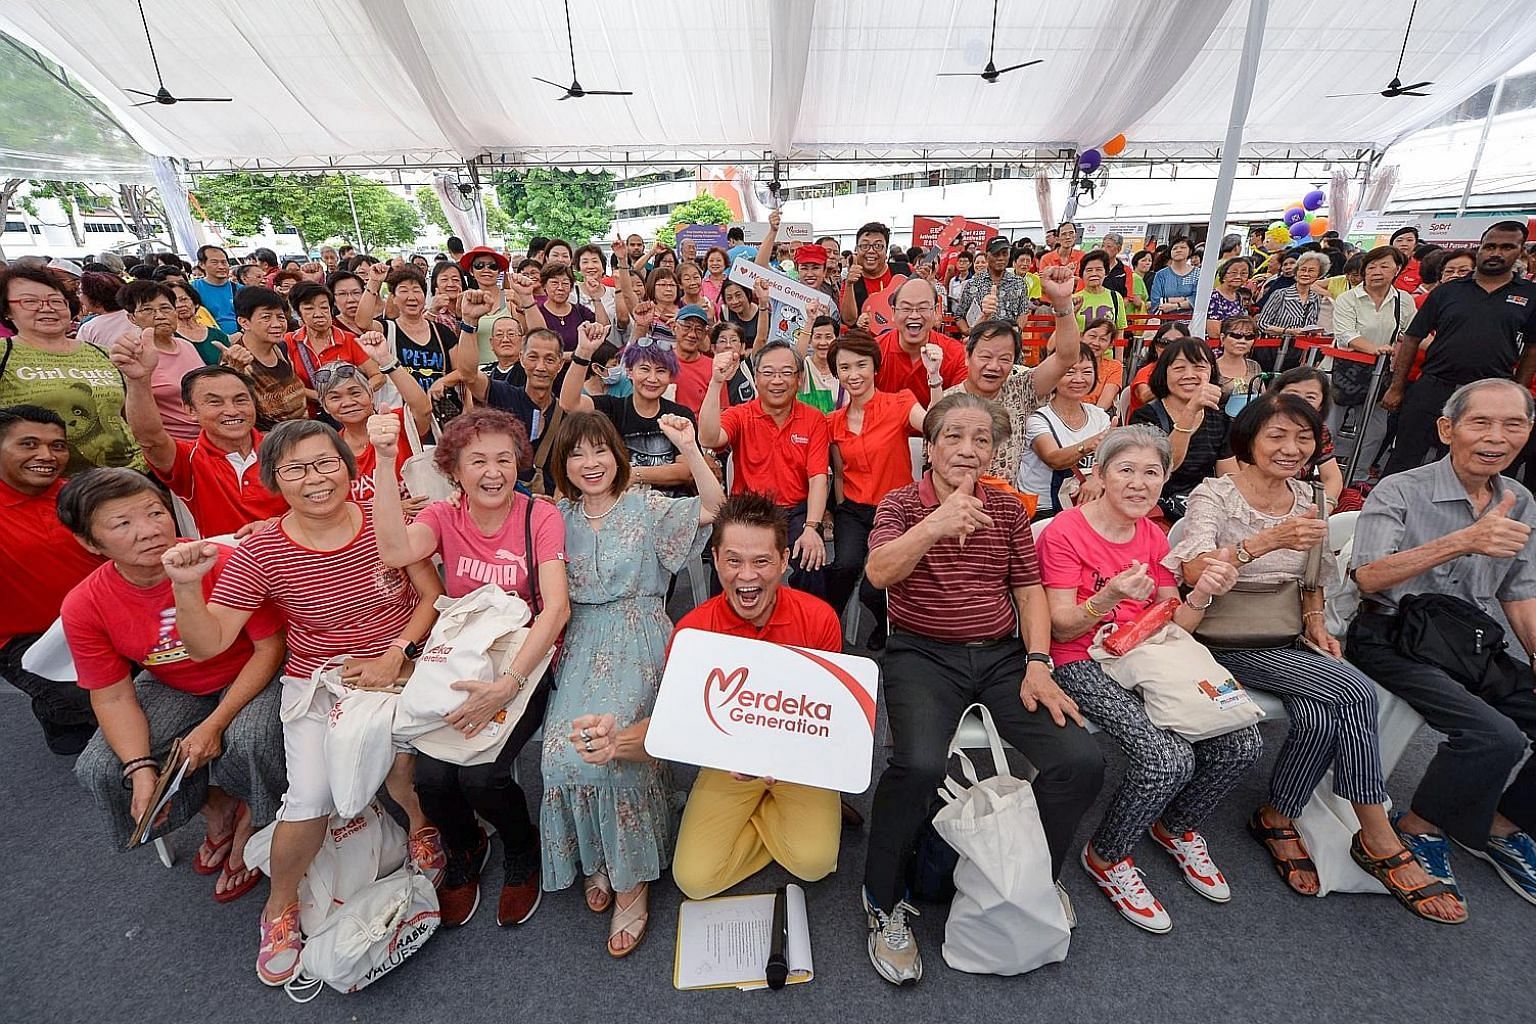 A Merdeka Generation roadshow at Bukit Gombak Neighbourhood Centre in June. Among attendees were Senior Minister of State for Health Amy Khor (first row, fourth from left) and MPs for Chua Chu Kang GRC - Health Minister Gan Kim Yong, Senior Parliamen